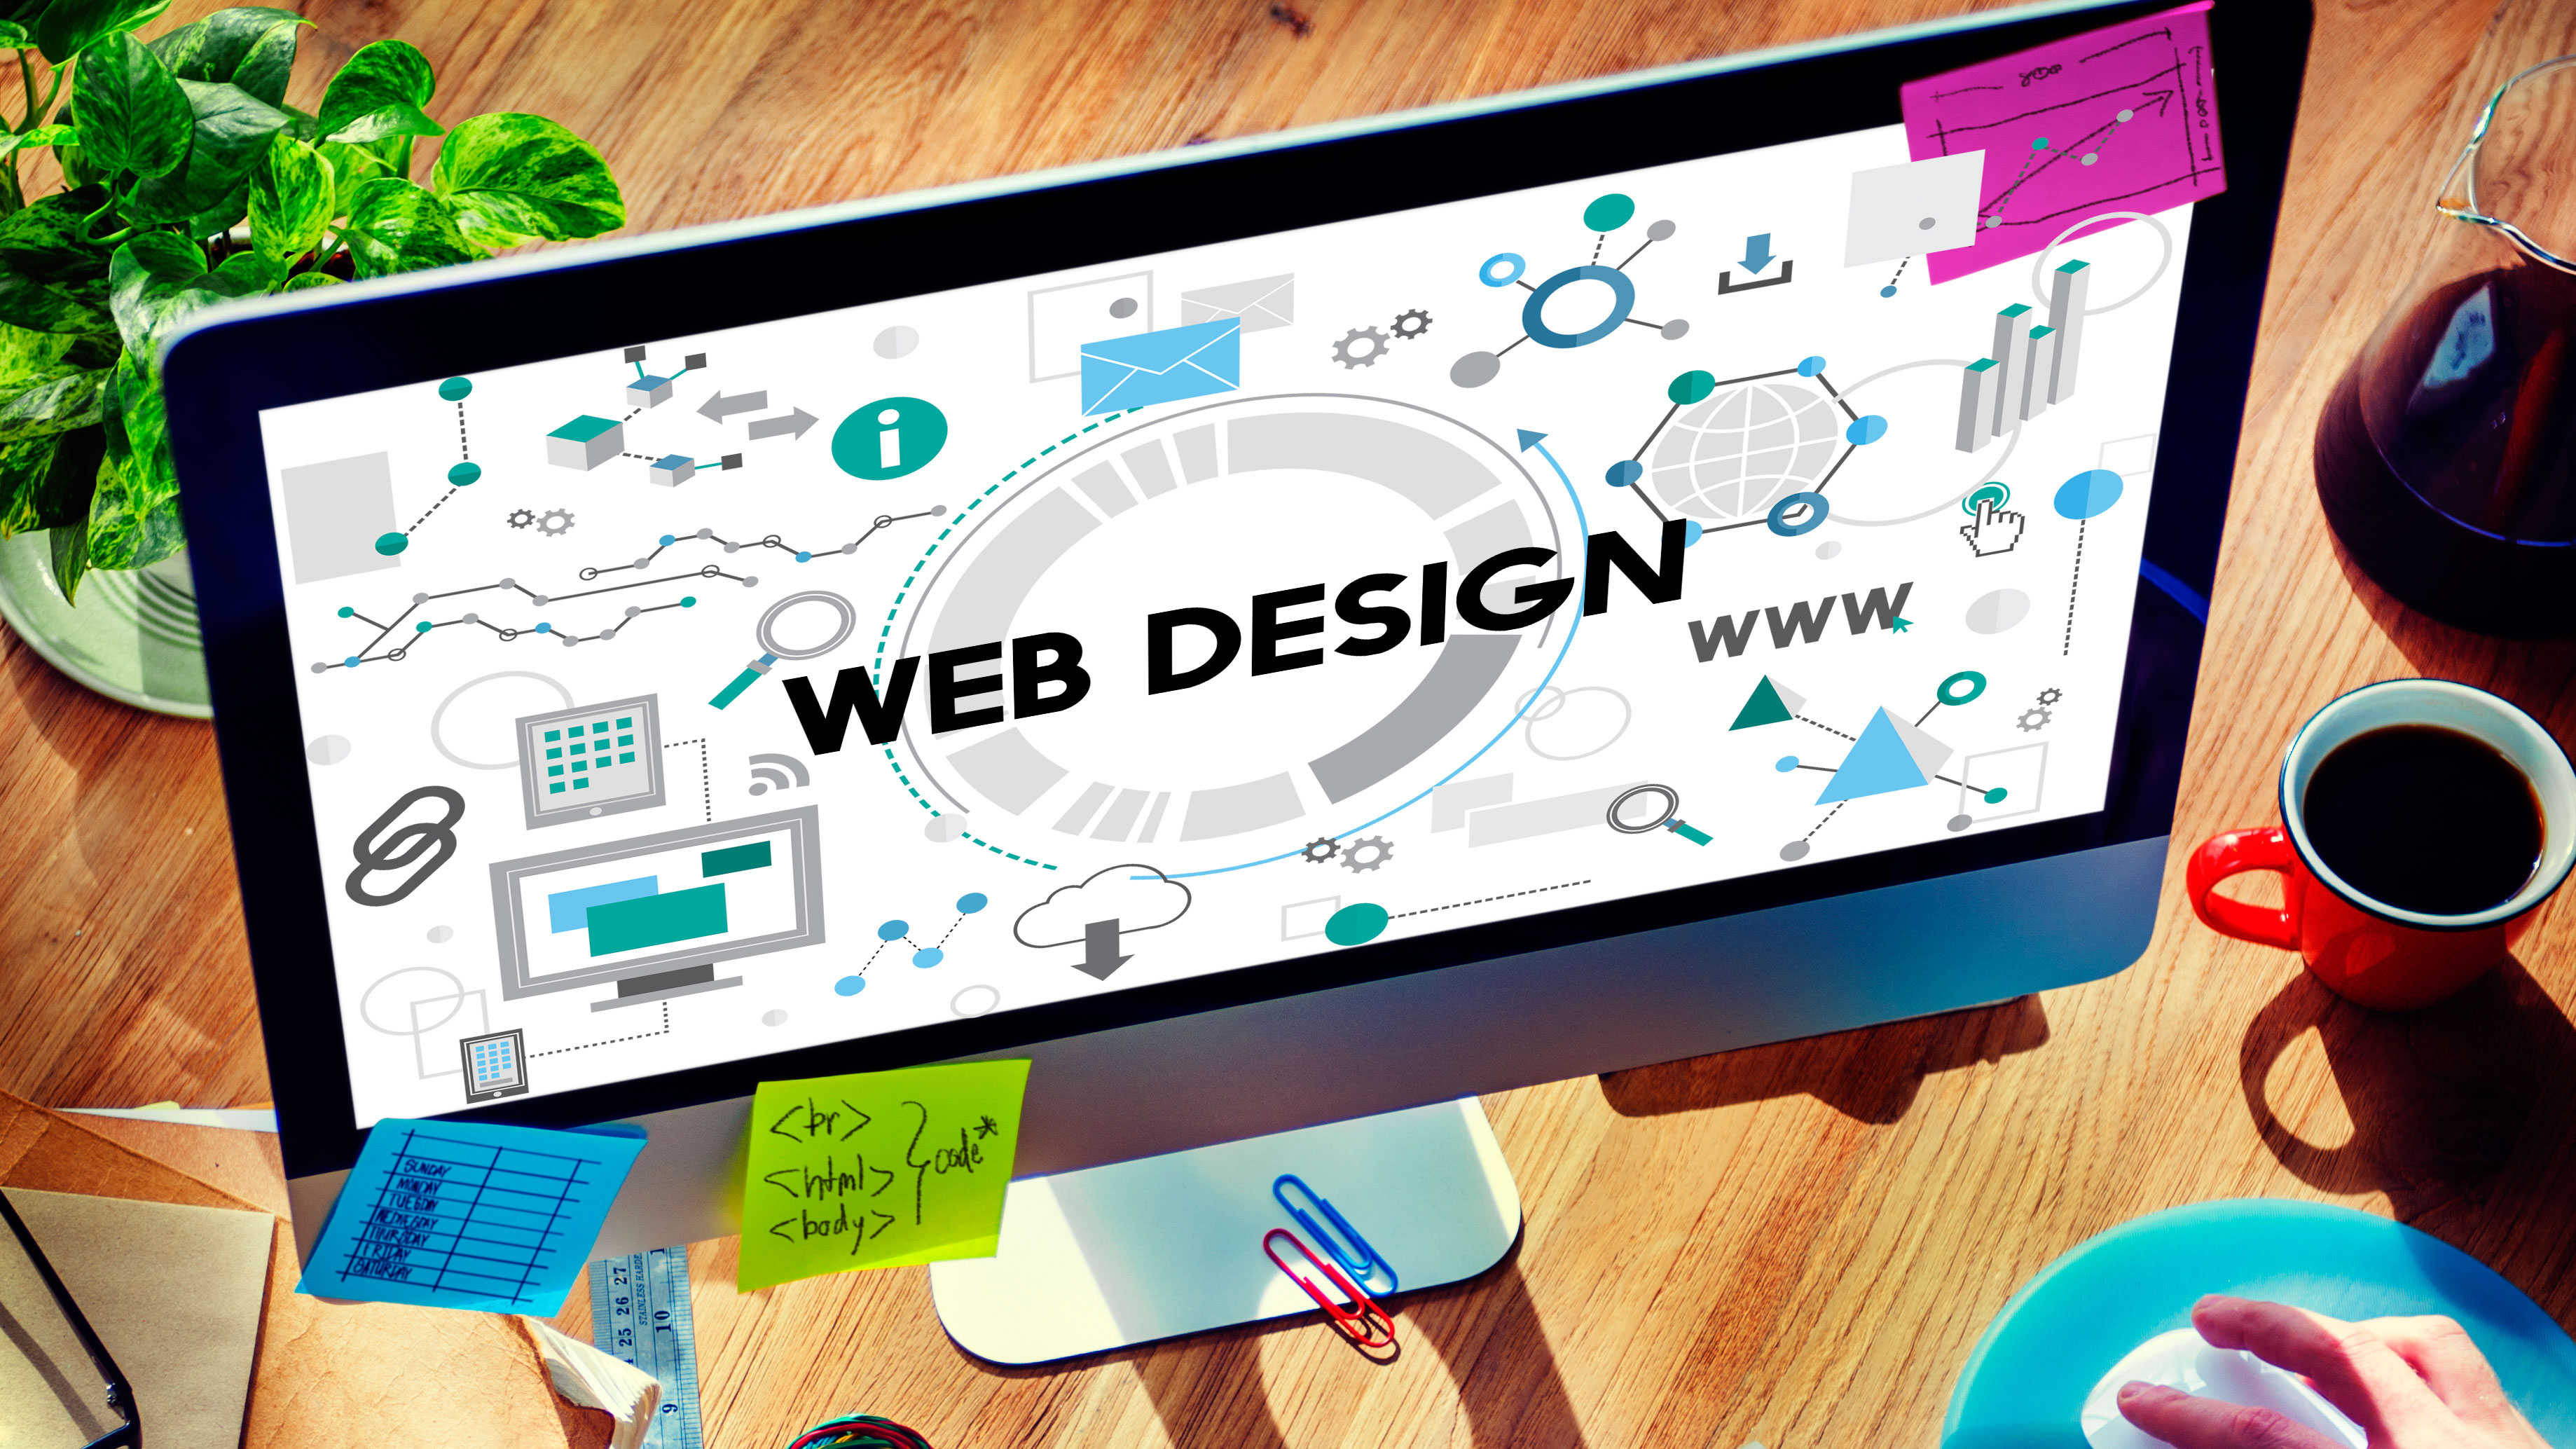 The next big thing in web design: 7 trends you need to know ...